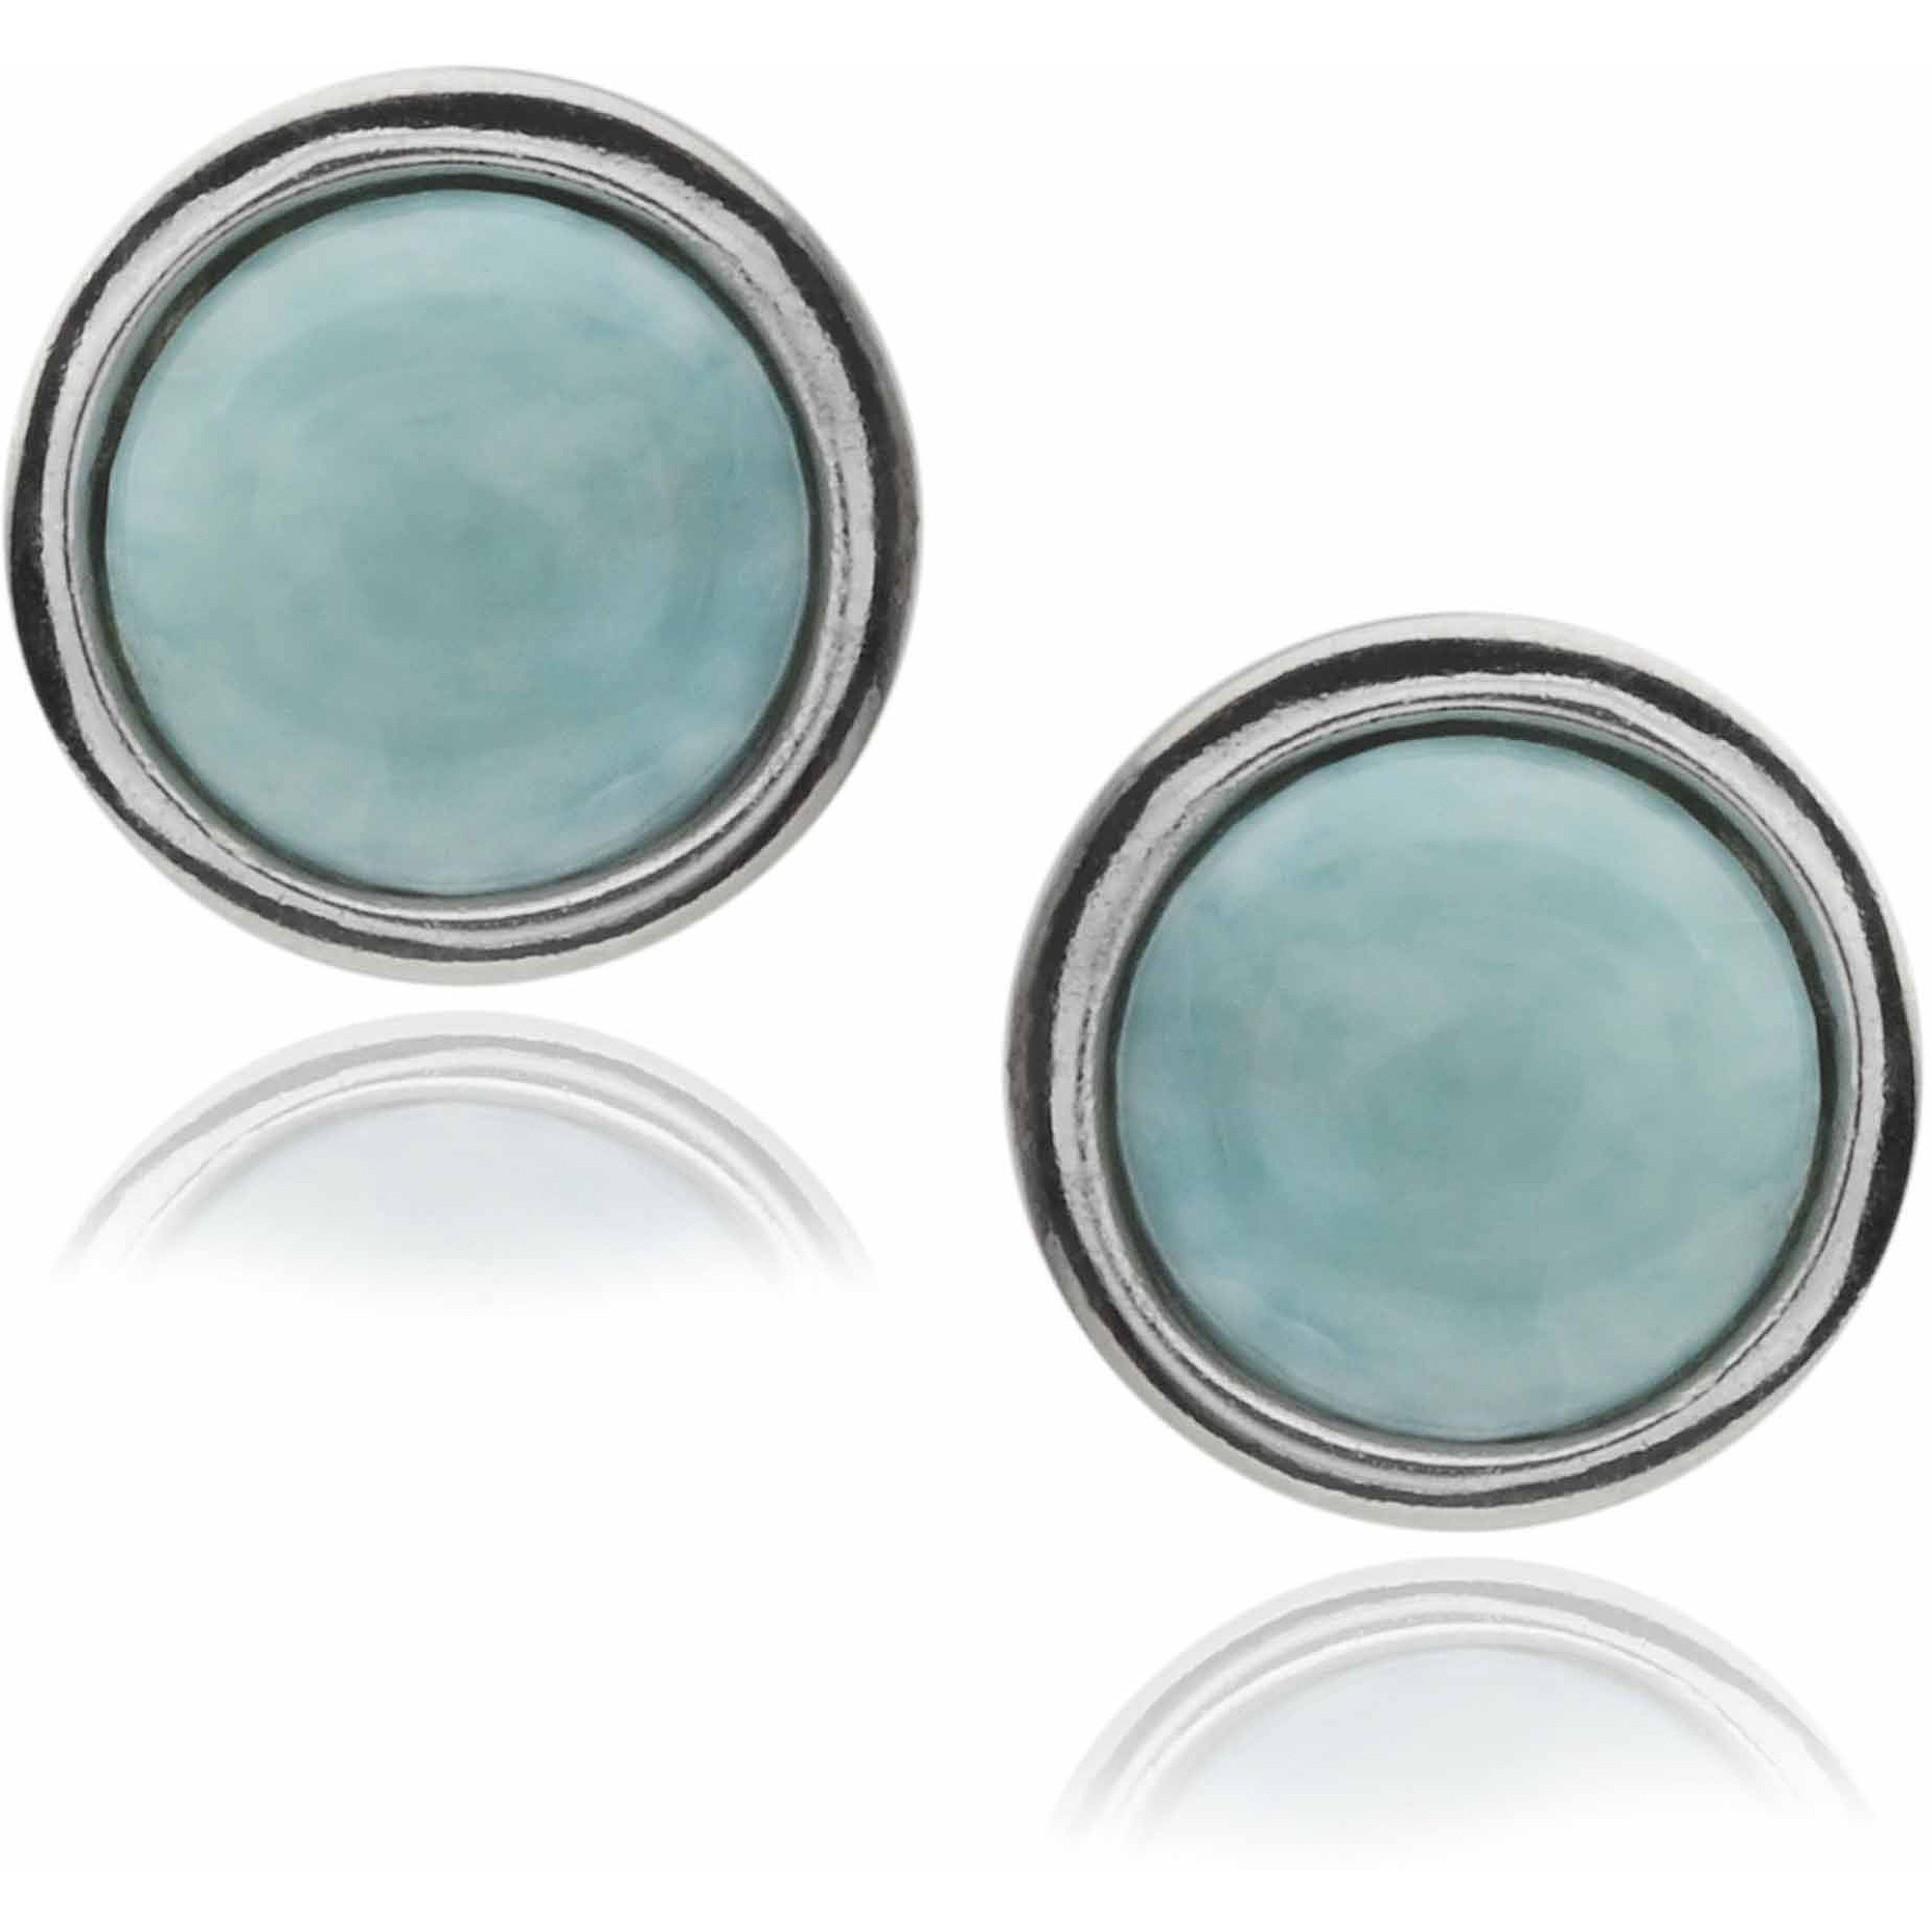 Brinley Co. Women's Sterling Silver Round Stud Earrings